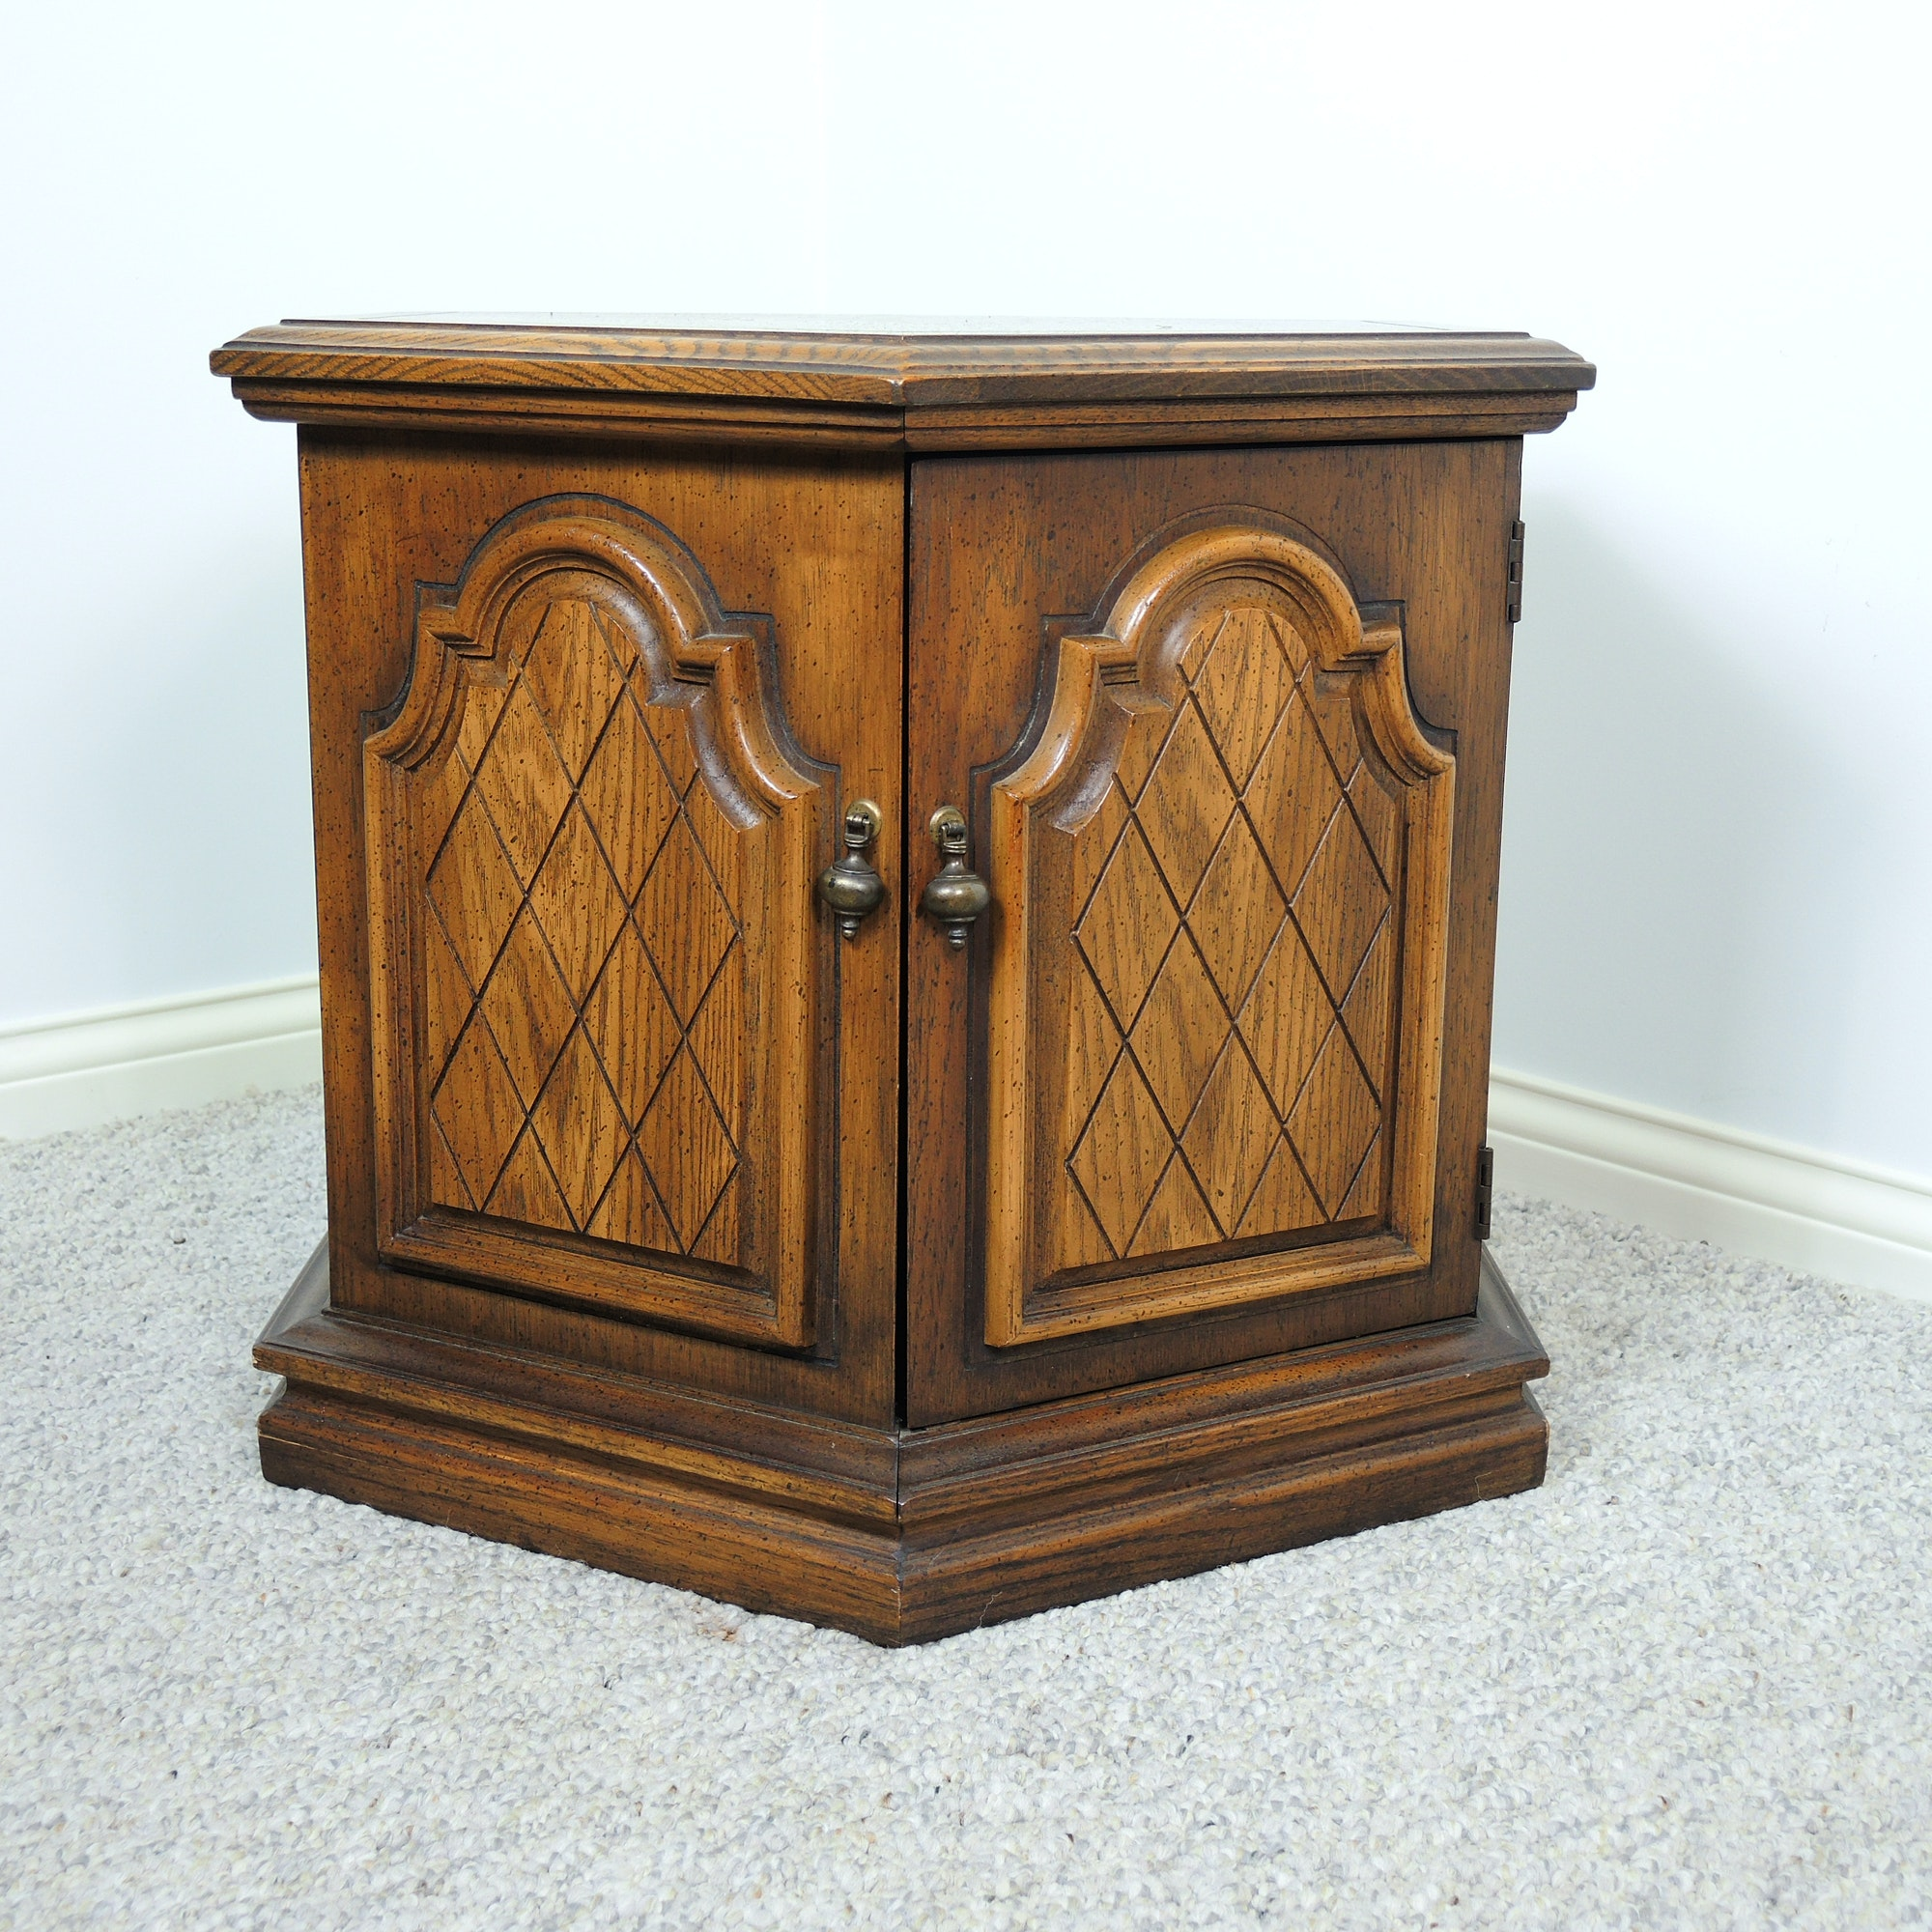 Vintage Hexagonal End Table / Cabinet